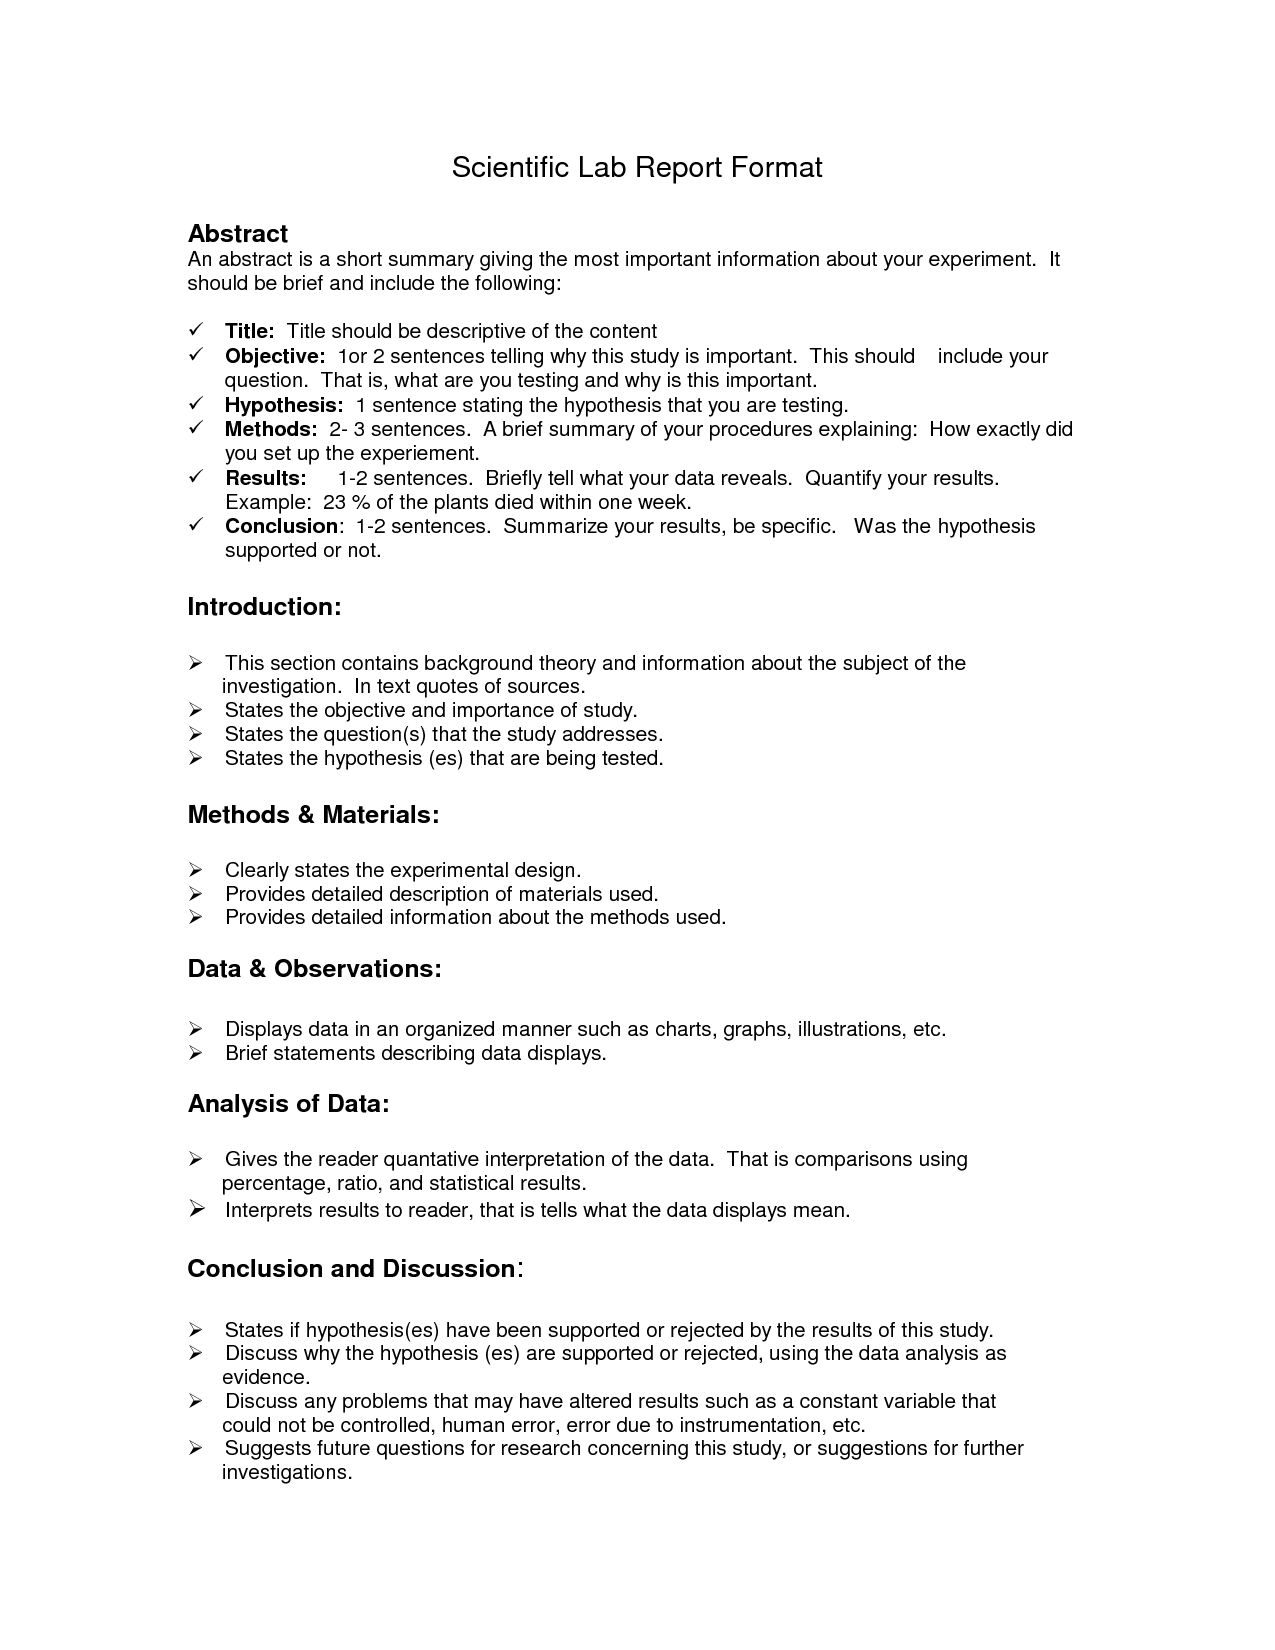 Lab Report Format Doc Environmental Science Lessons Lab With Regard To Biology Lab Report Temp Lab Report Template Lab Report Environmental Science Lessons